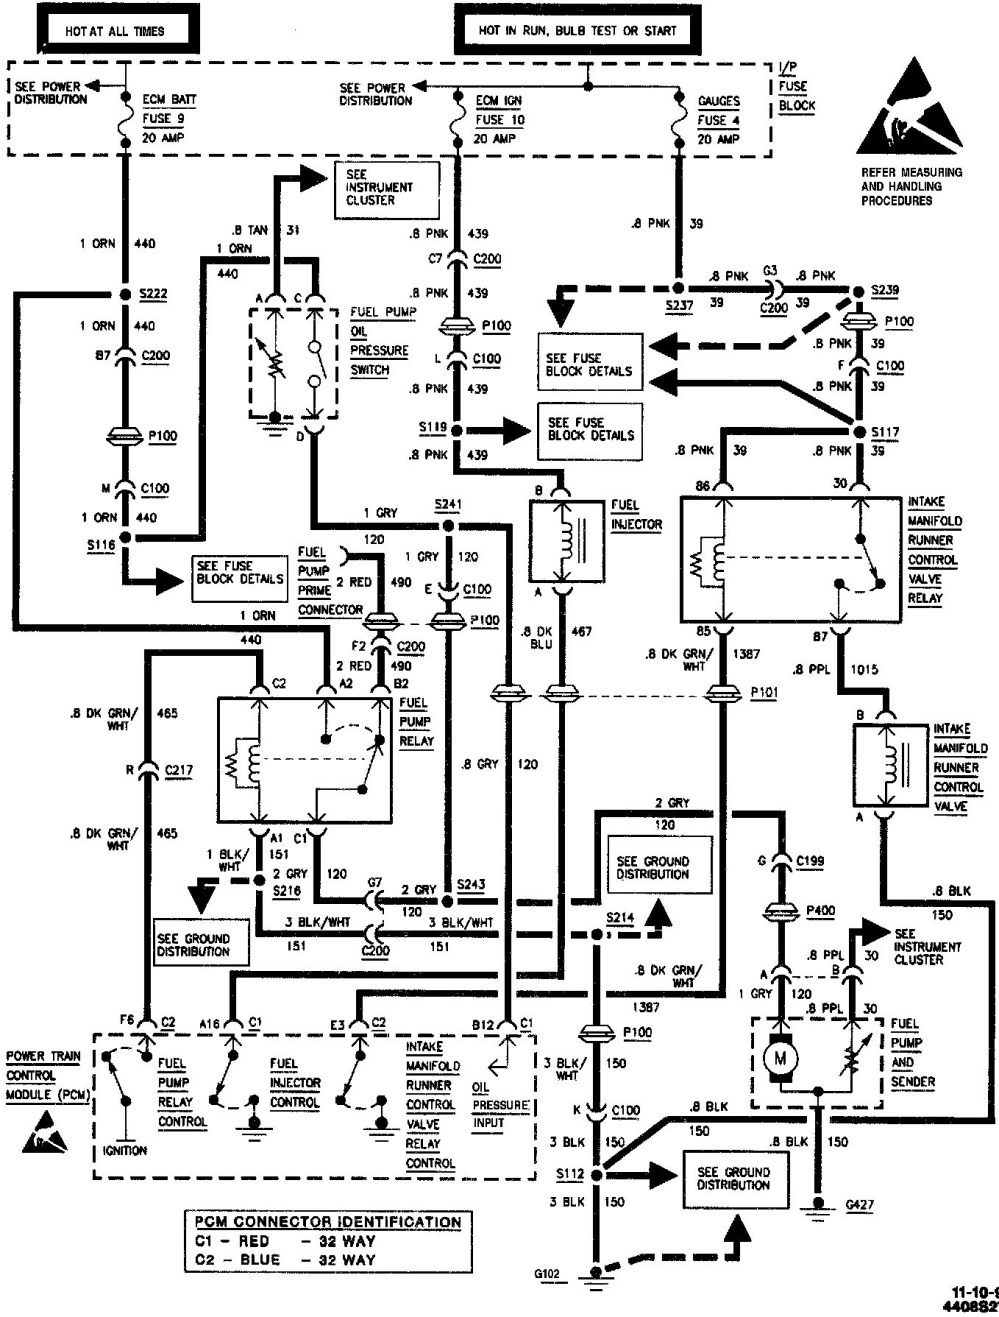 medium resolution of 99 chevy s10 wiring diagram wiring diagram origin chevy s10 tailight 1997 s10 wiring diagram wiring